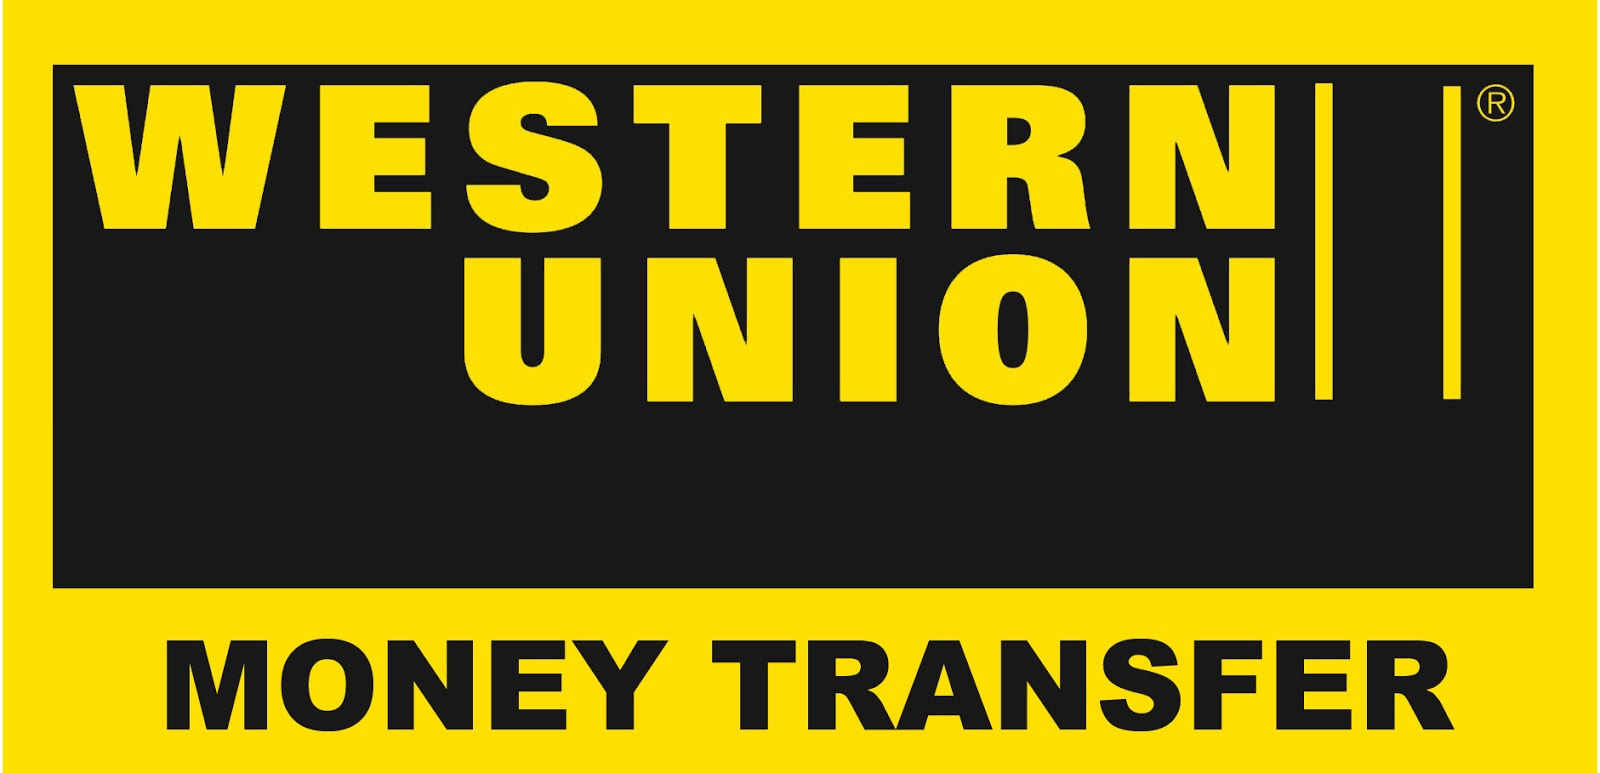 Western union carding trick of 2018 transfer unlimited money to.